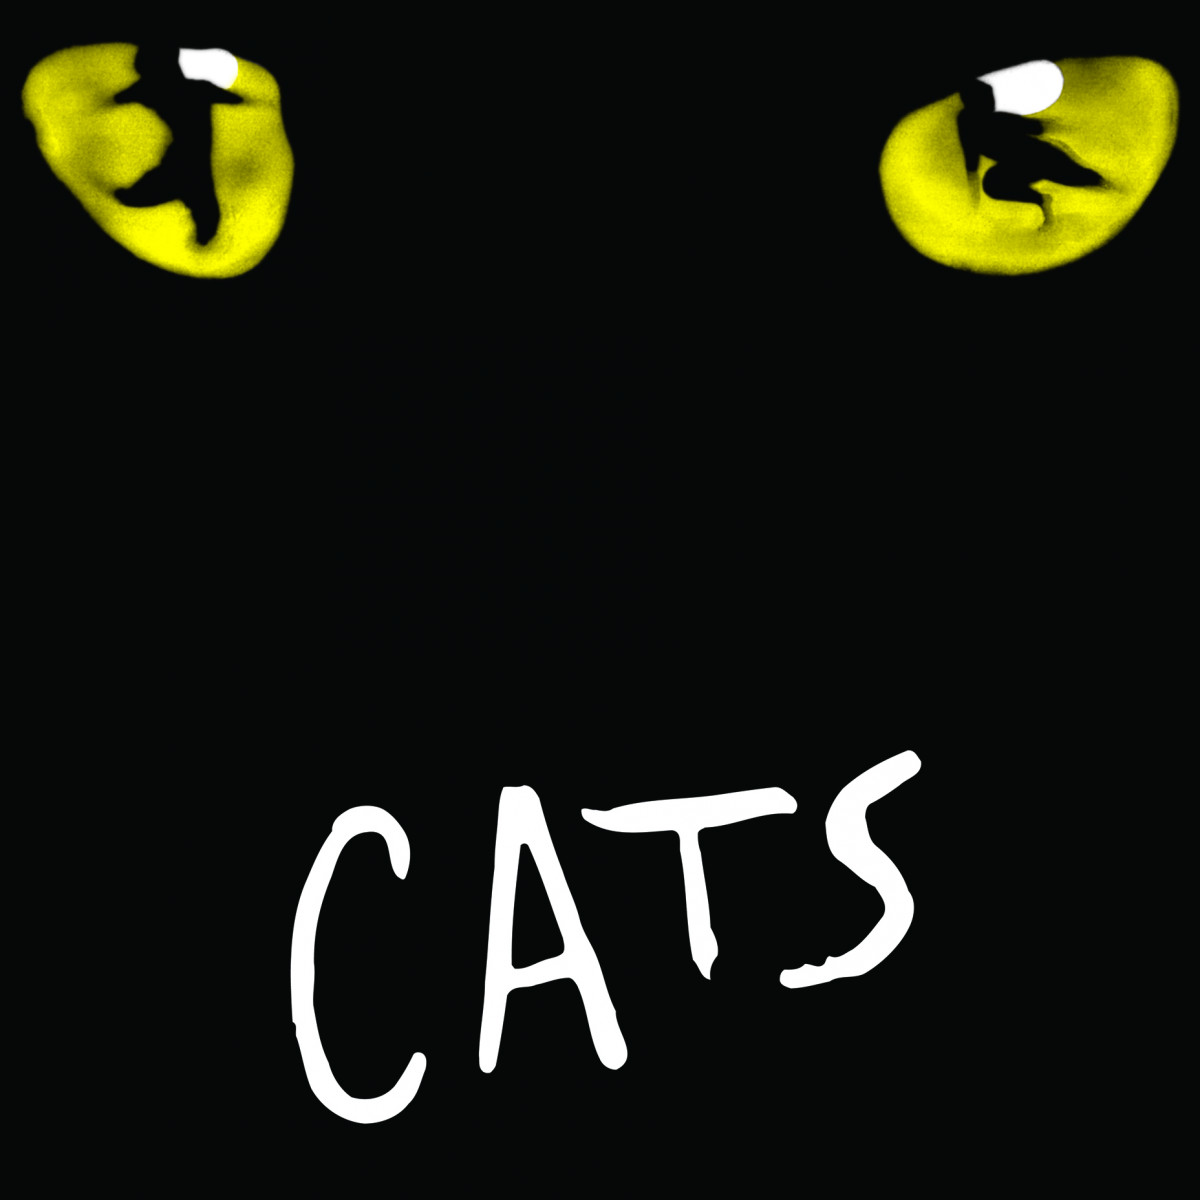 Andrew Lloyd Webber and T.S. Eliot's Cats the musical logo